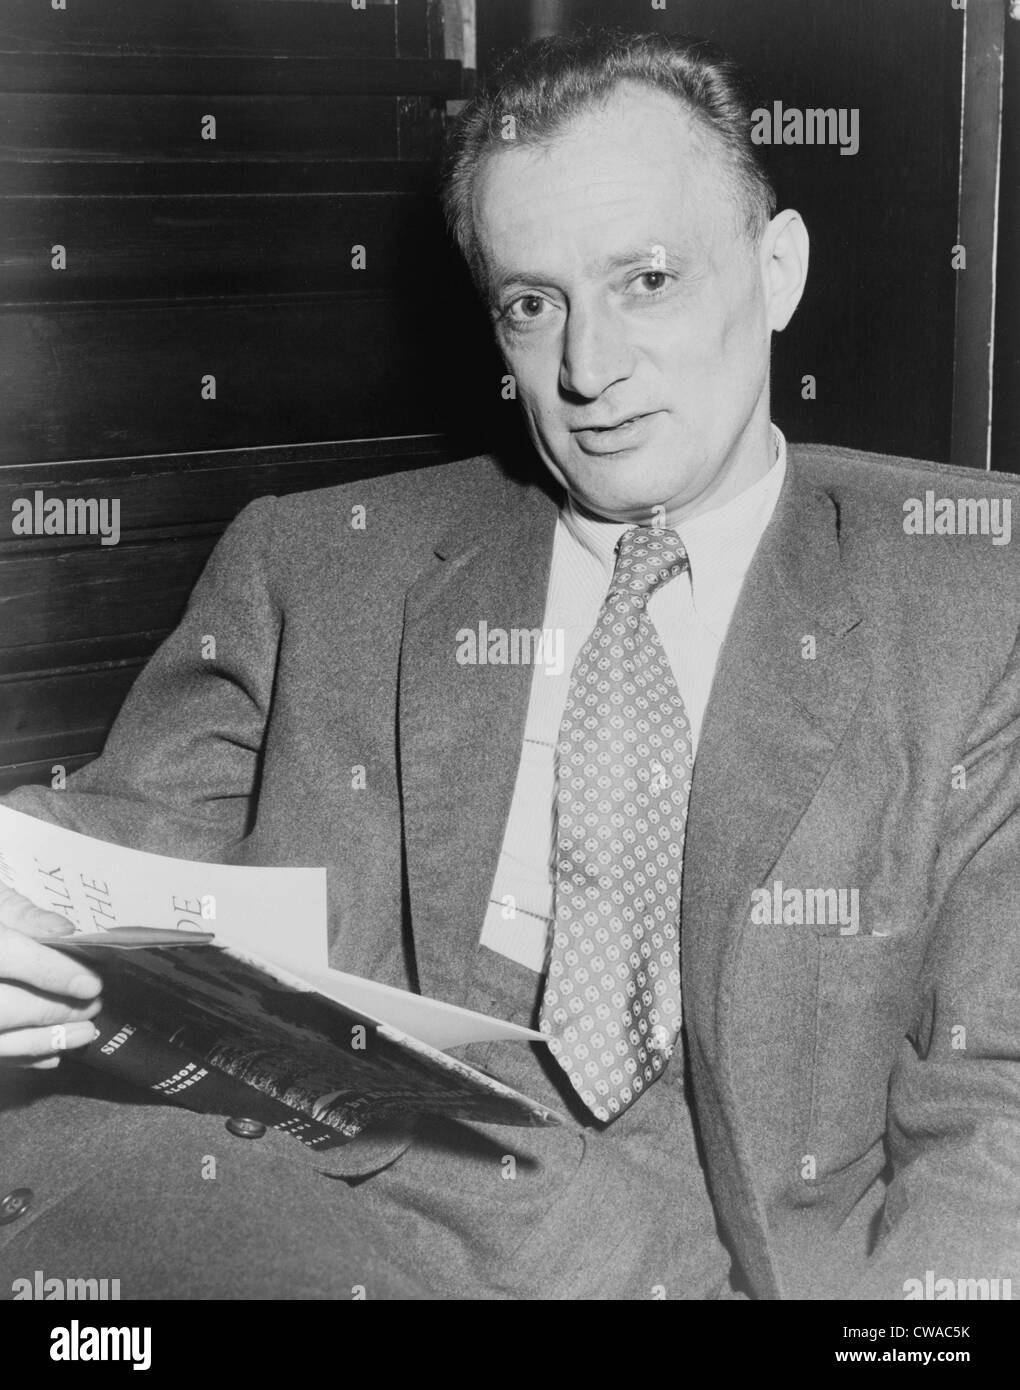 Nelson Algren (1909-1981), holding copy of his 1956 book 'A Walk on the Wild Side.' He won the National - Stock Image